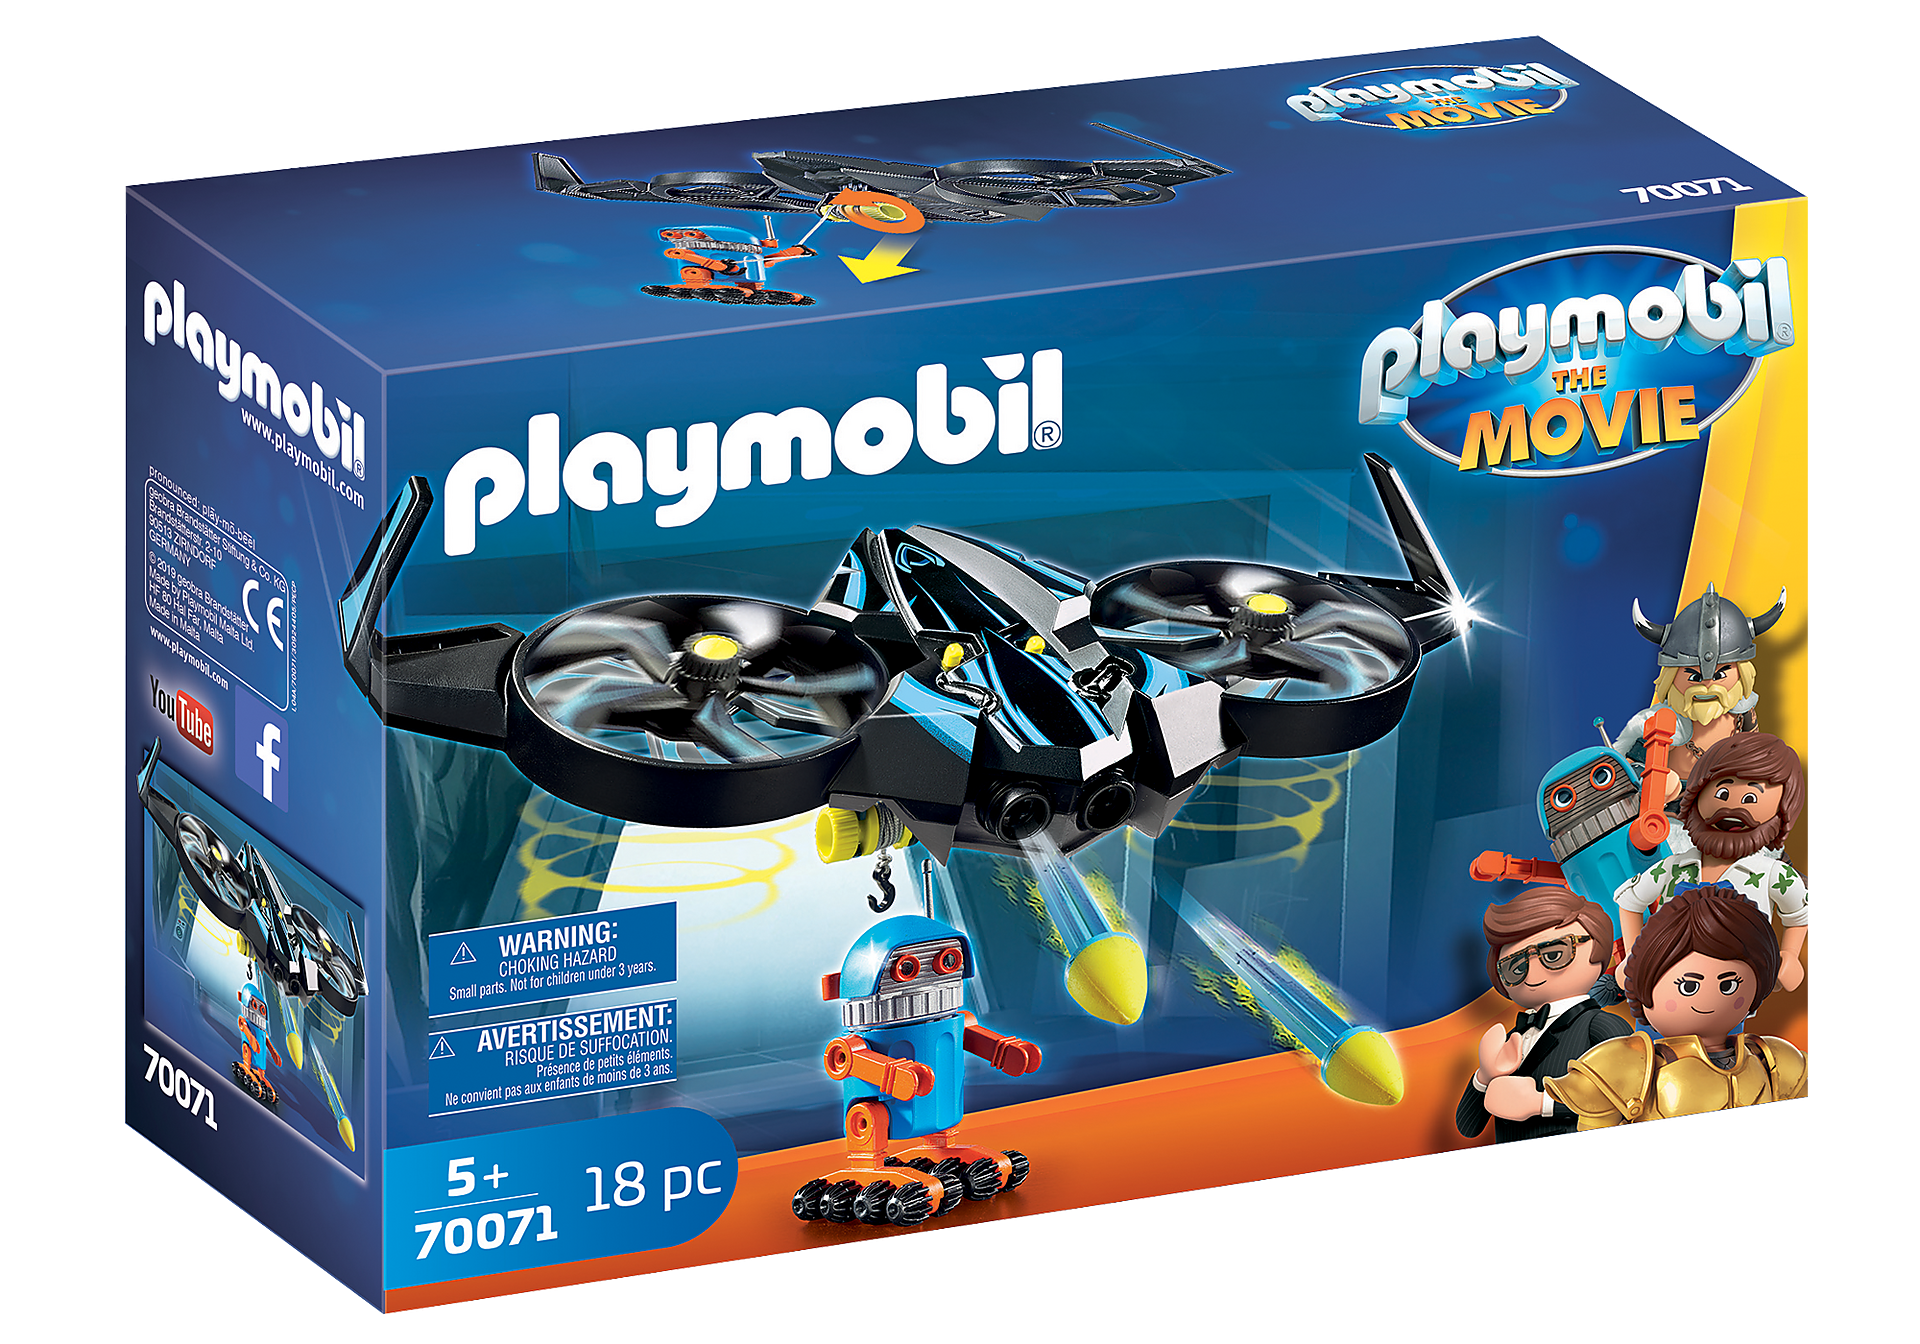 70071 PLAYMOBIL: THE MOVIE Robotitron avec drone zoom image2